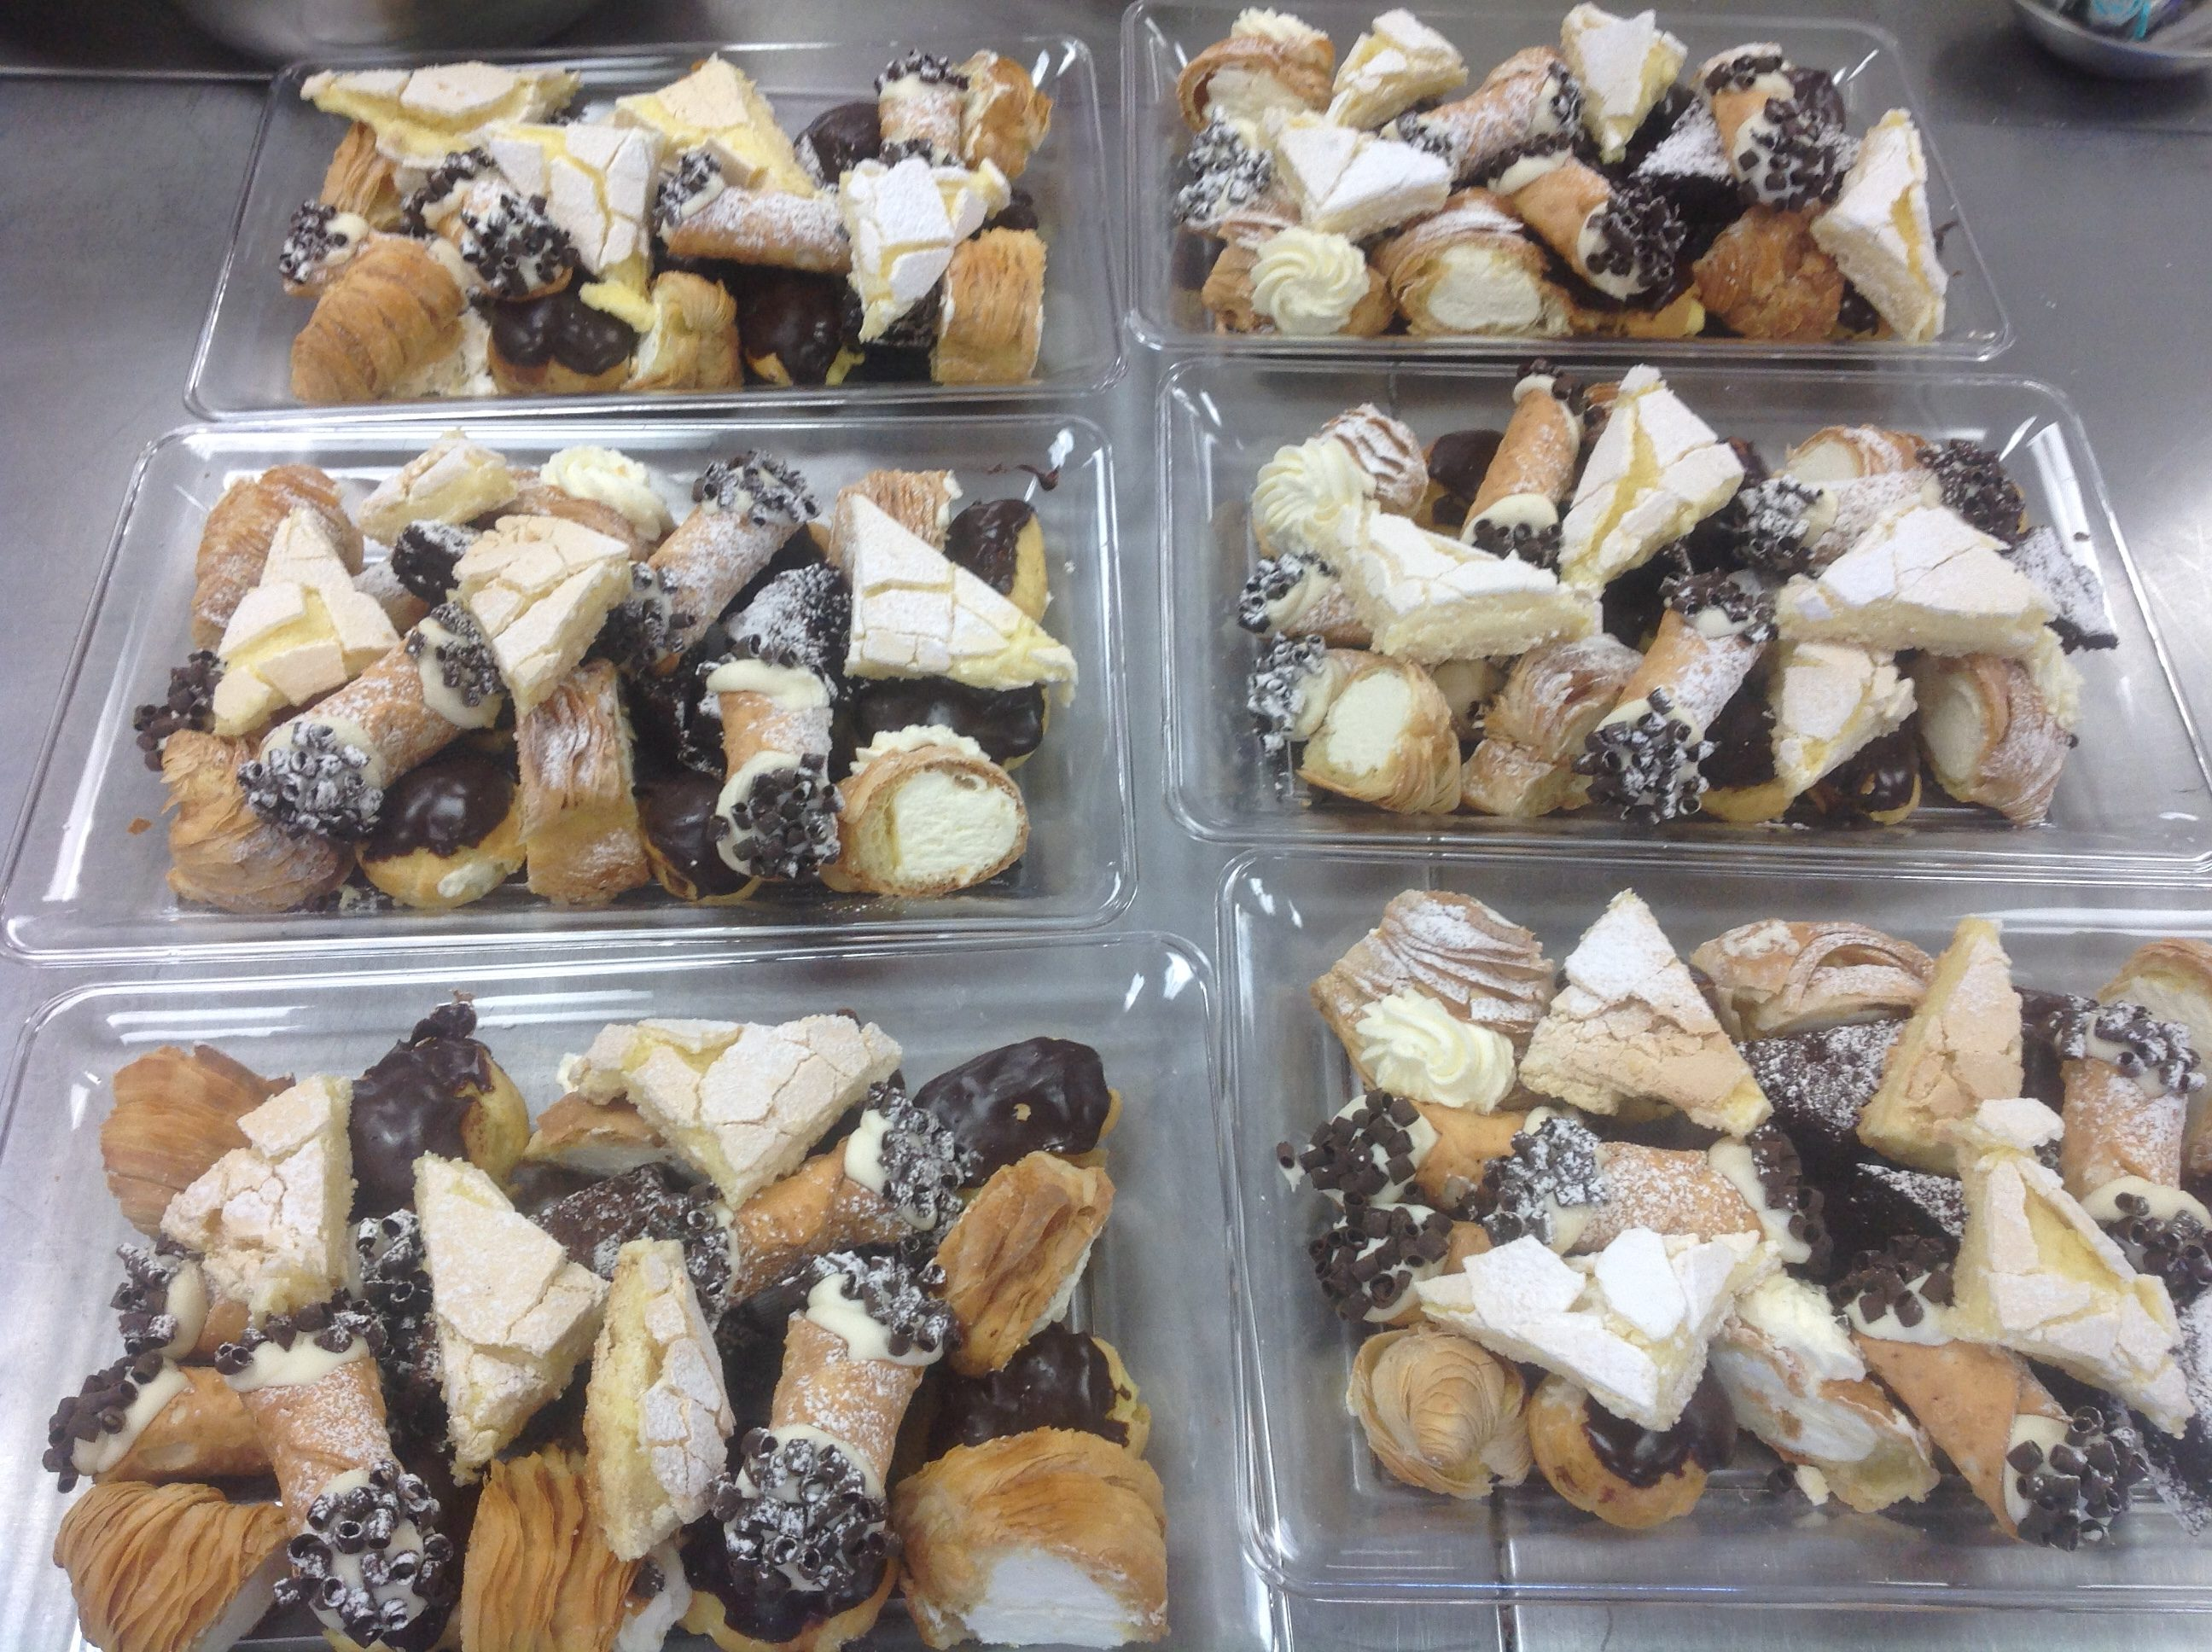 Pastry platters at Dolce and Biscotti Italian Bakery